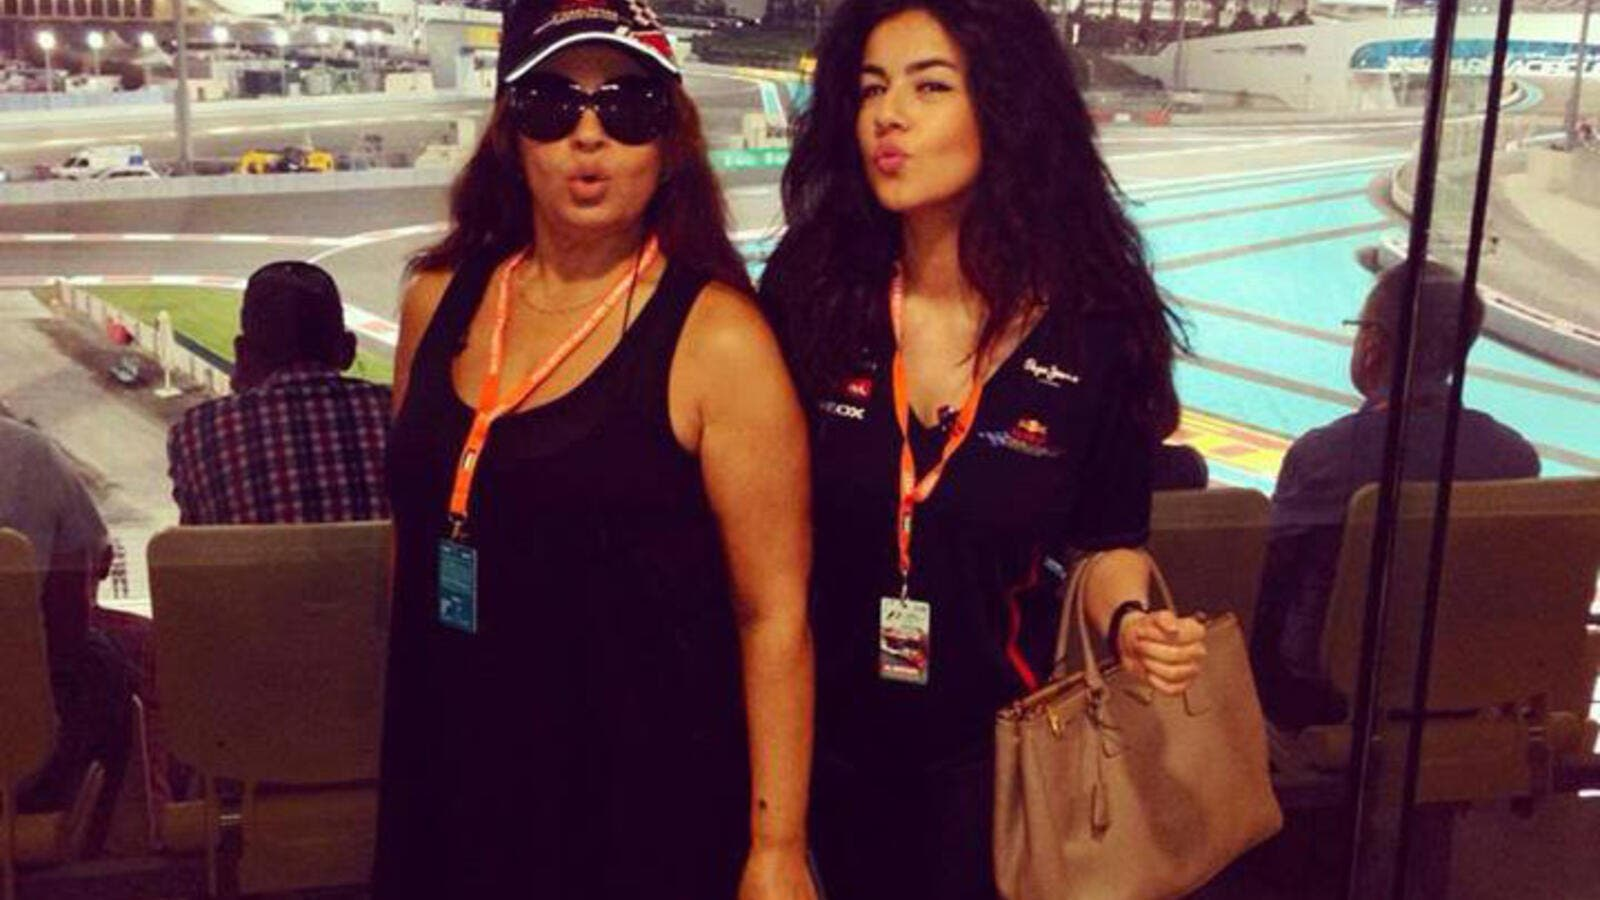 Fifi Abdo with her daughter Hanadi at the F1 race in Abu Dhabi. (Image: Facebook)